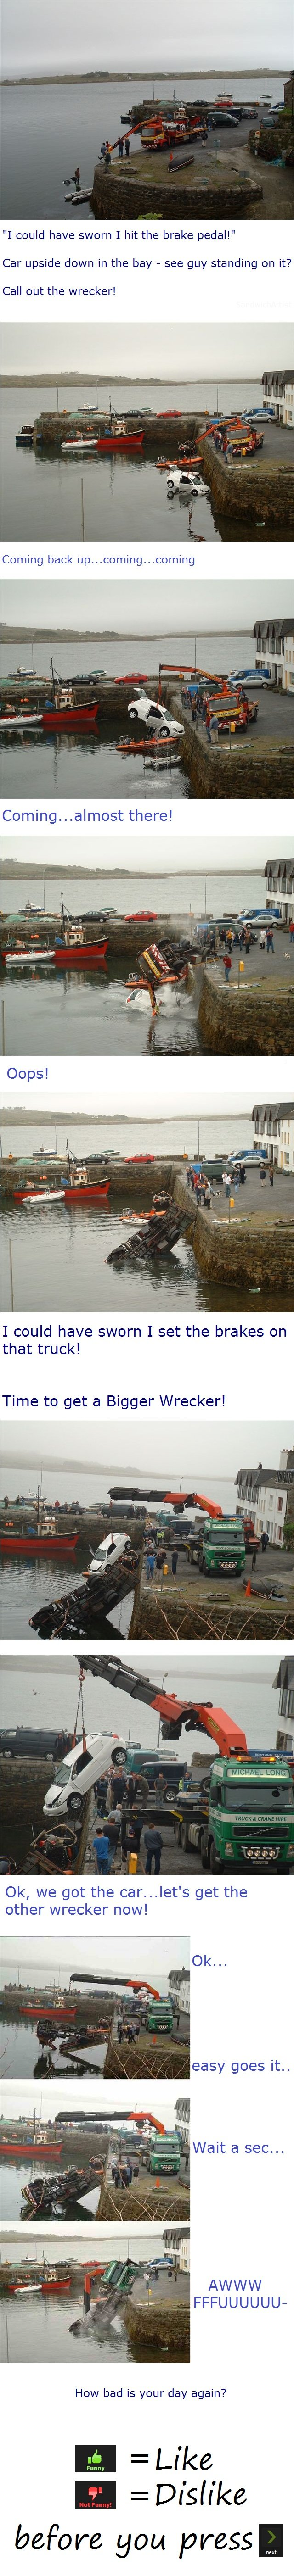 Having a better day yet?. something i made. hoping it may inspire somebody =D. I could have sworn I hit the brake pedal!'' Car upside down in the bay - see guy